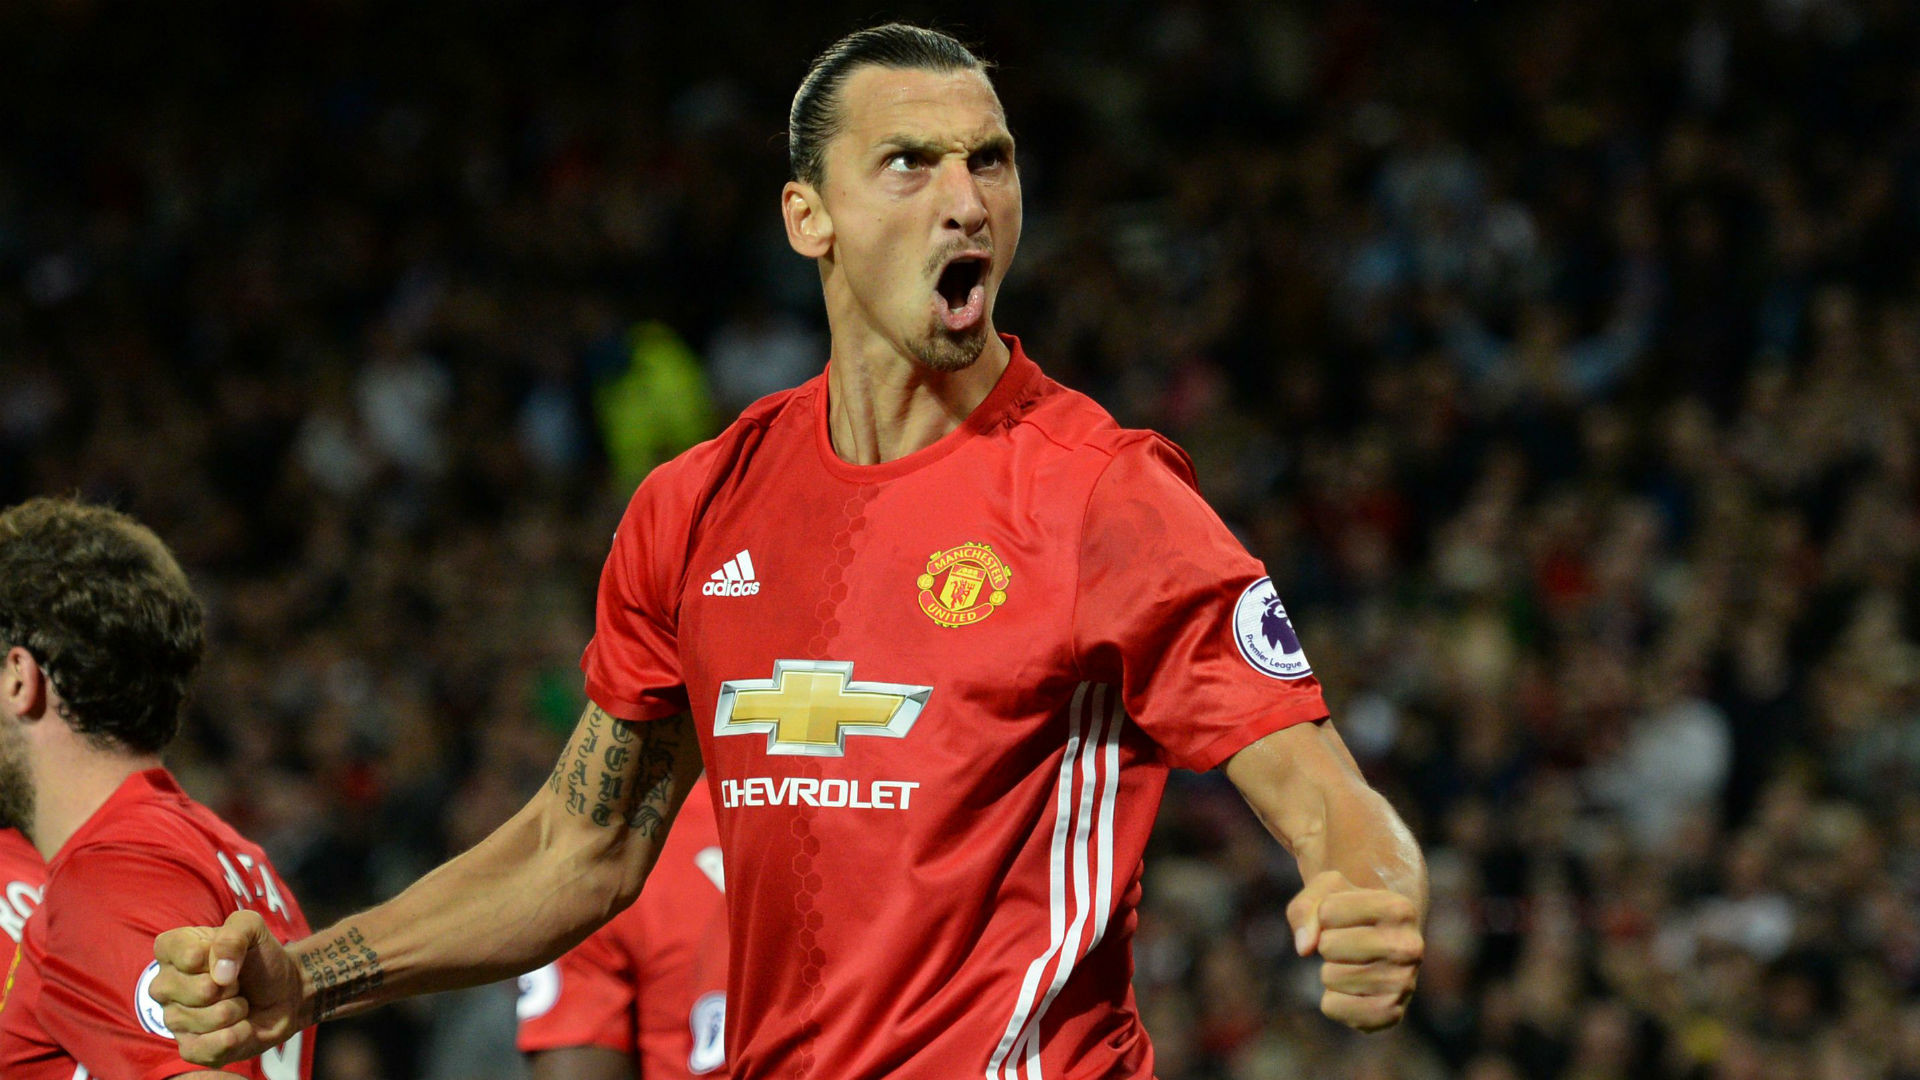 Ibrahimovic's doctor insists Zlatan will return to action when he's 'fully  fit'